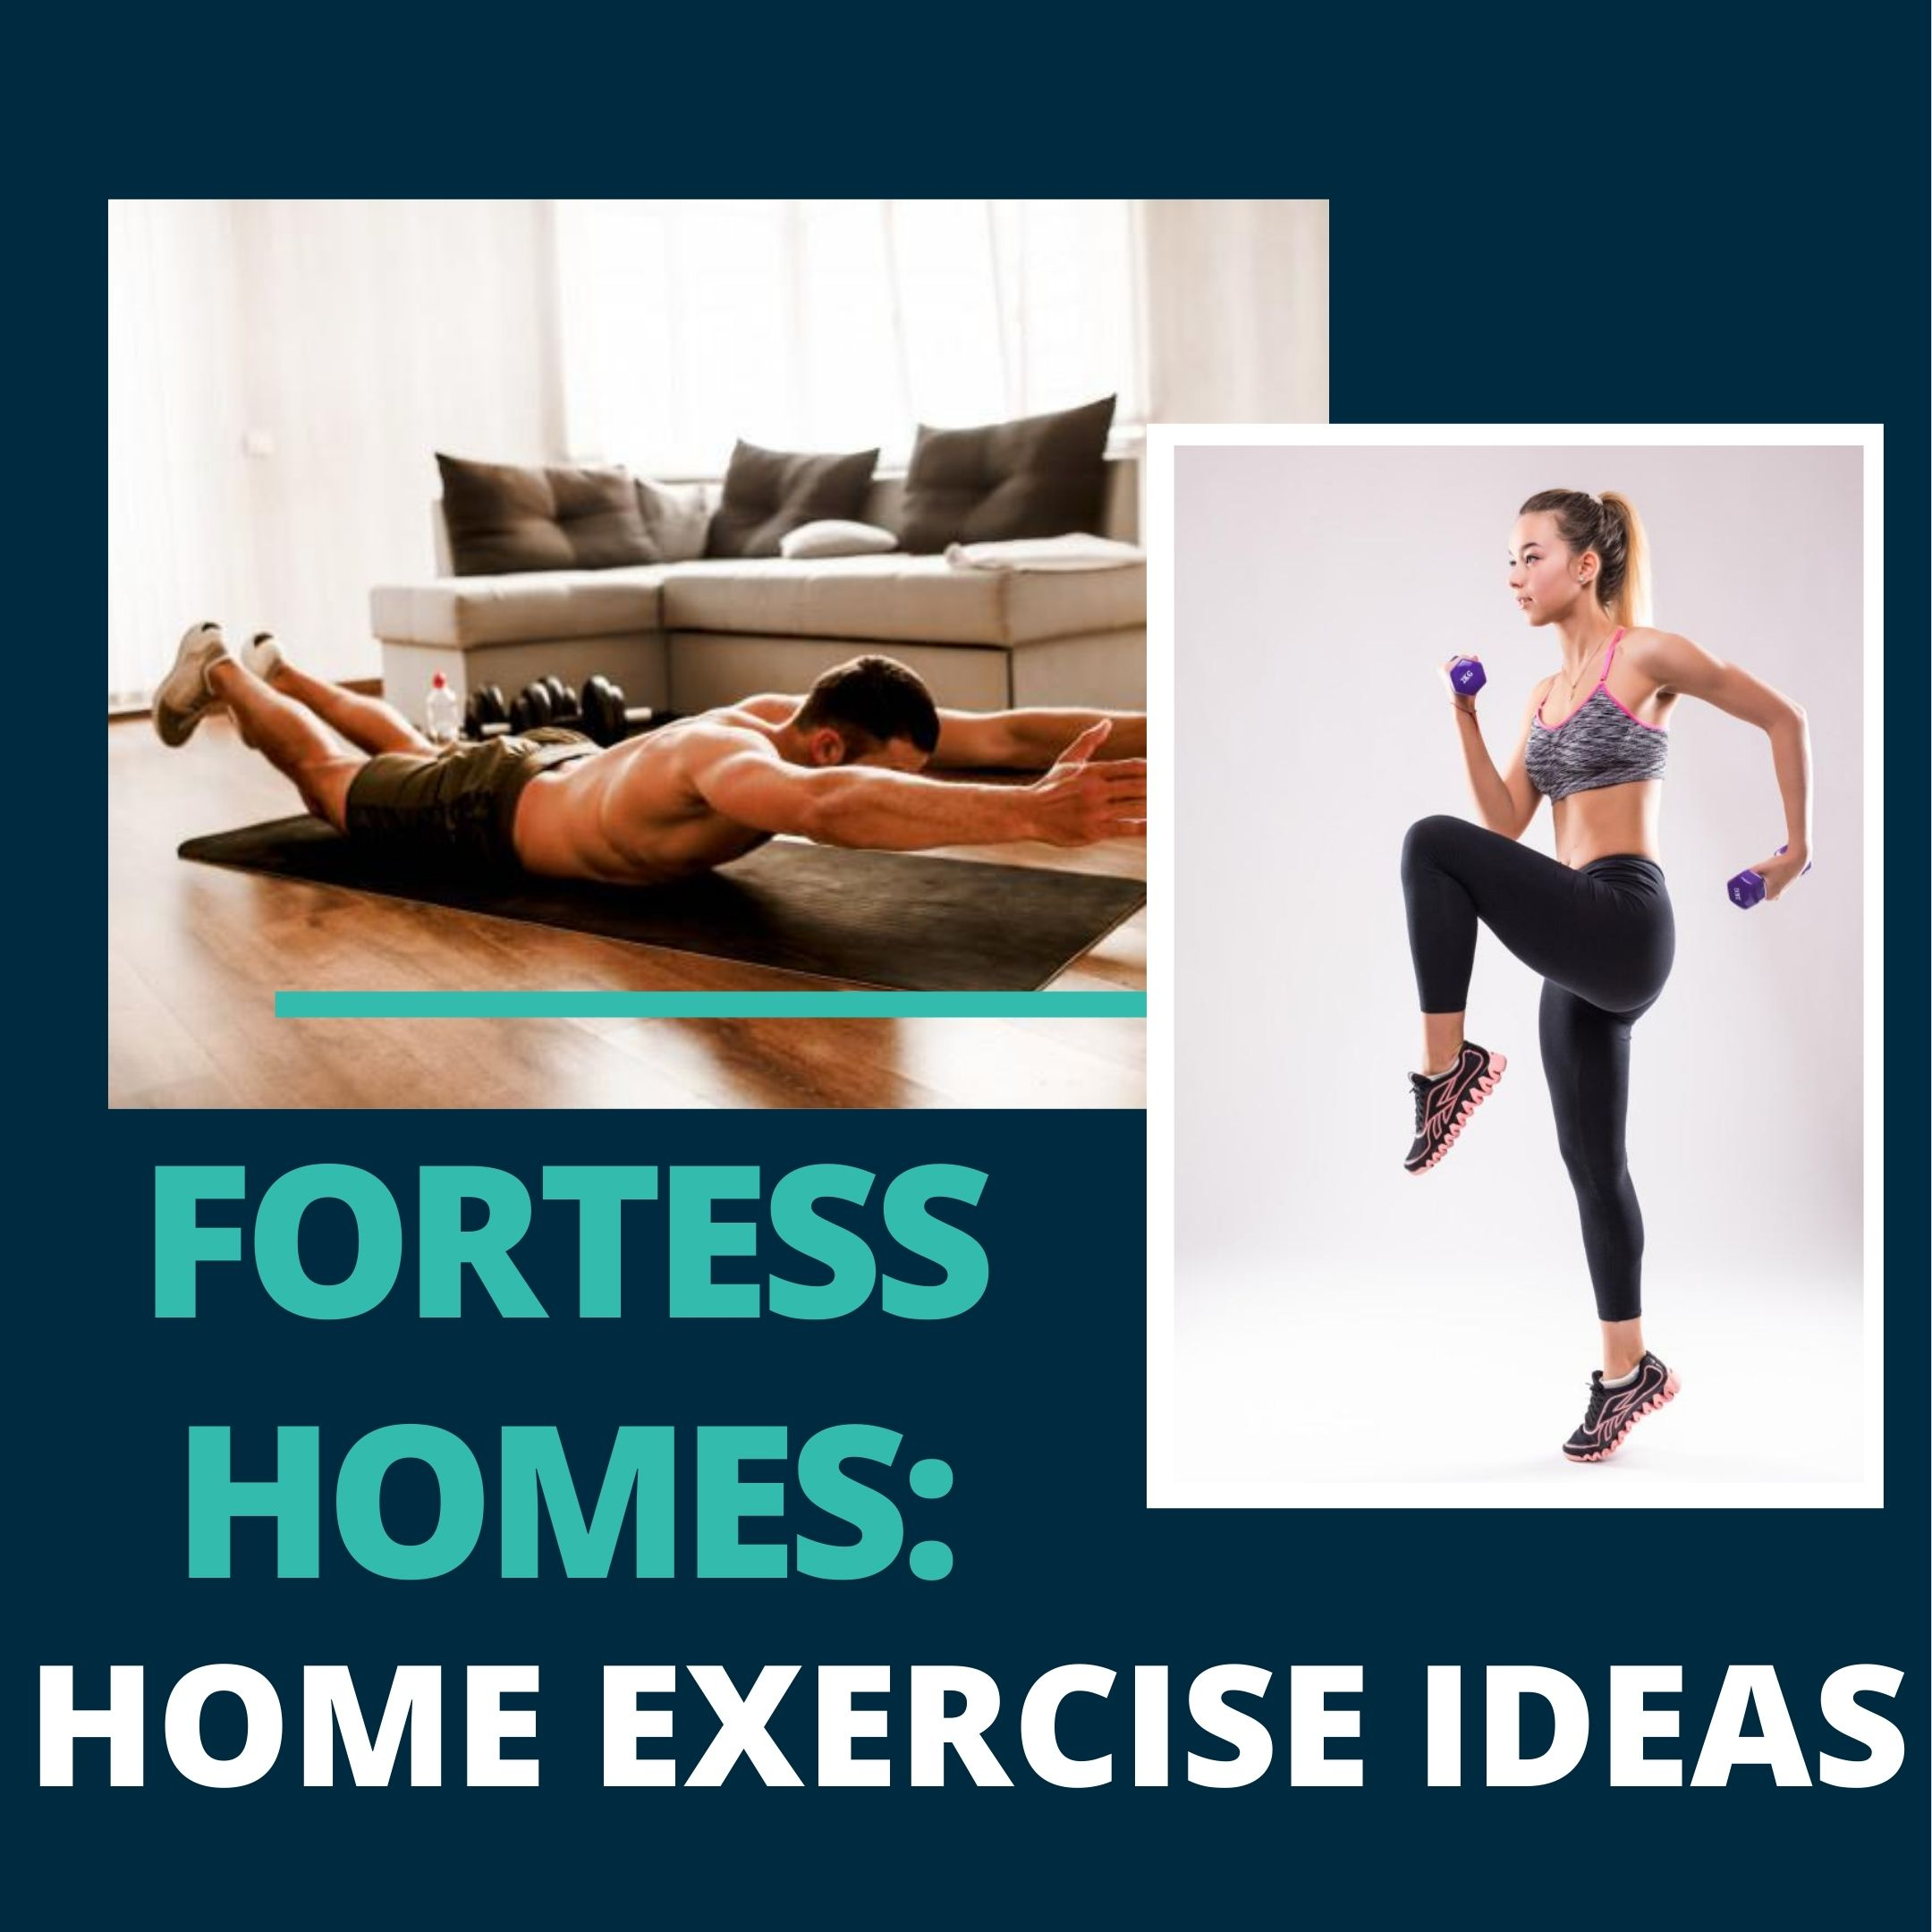 FORTESS HOMES: HOME EXERCISE IDEAS